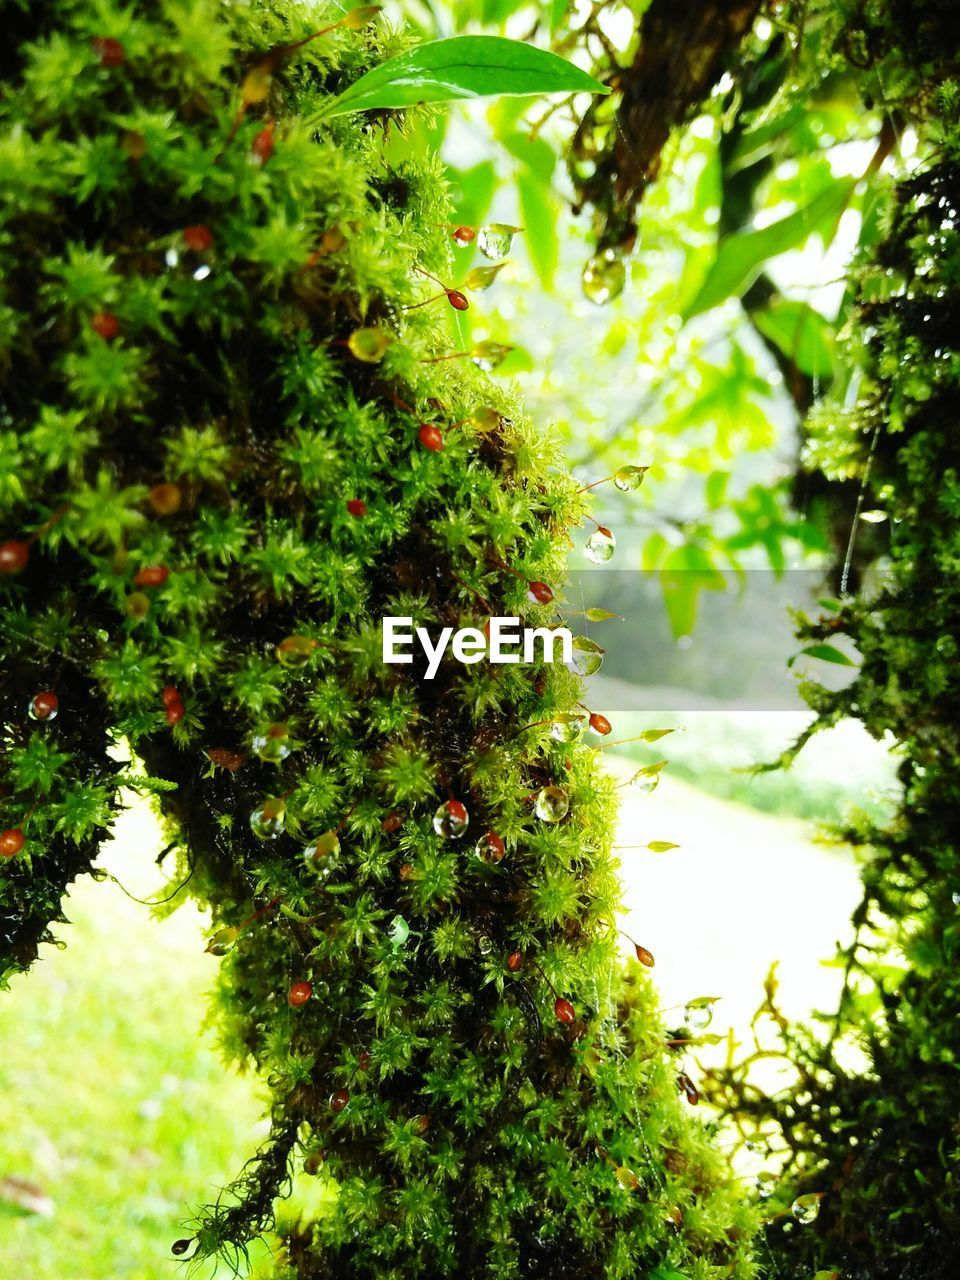 growth, green color, tree, nature, beauty in nature, no people, outdoors, day, plant, low angle view, fruit, branch, close-up, freshness